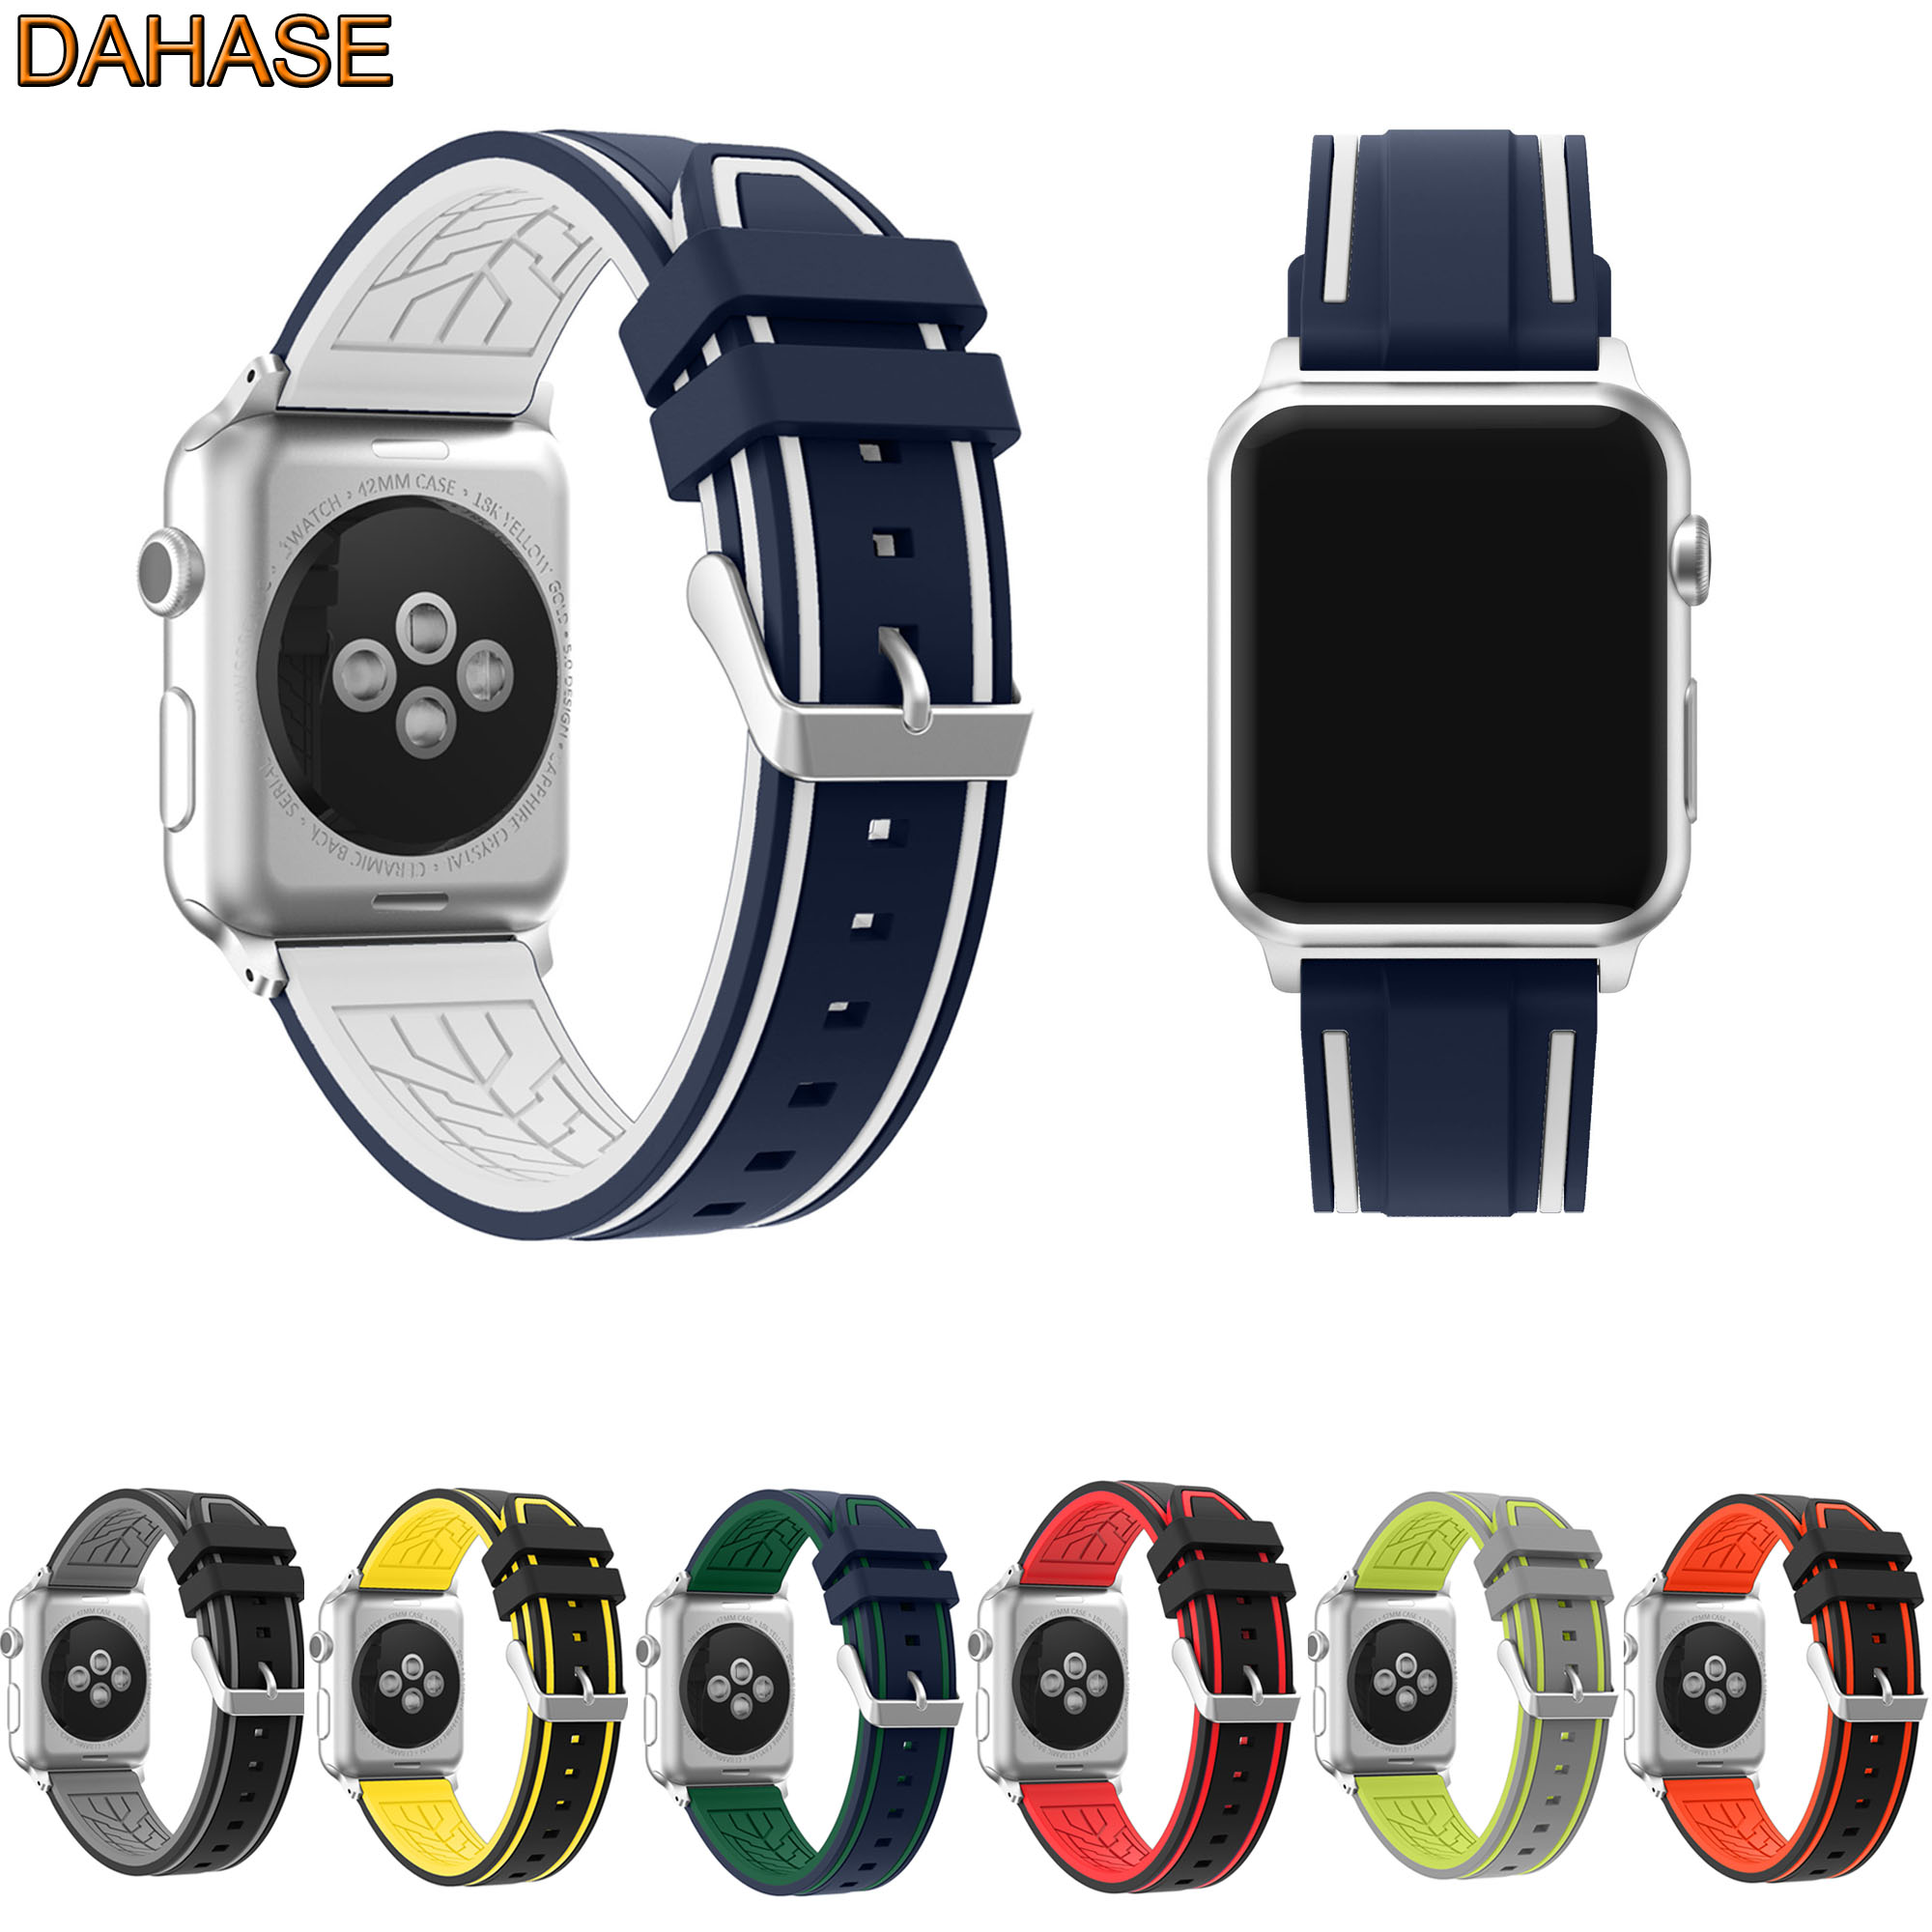 dahase dual colors sport silicone strap for apple watch band series 1 2 3 protect cover for apple watch case 42mm 38mm bracelet DAHASE Sport Silicone Watch Strap For Apple Watch Band 42mm 38mm Metal Buckle Bracelet Series 1 2 3 Replacement Wristband